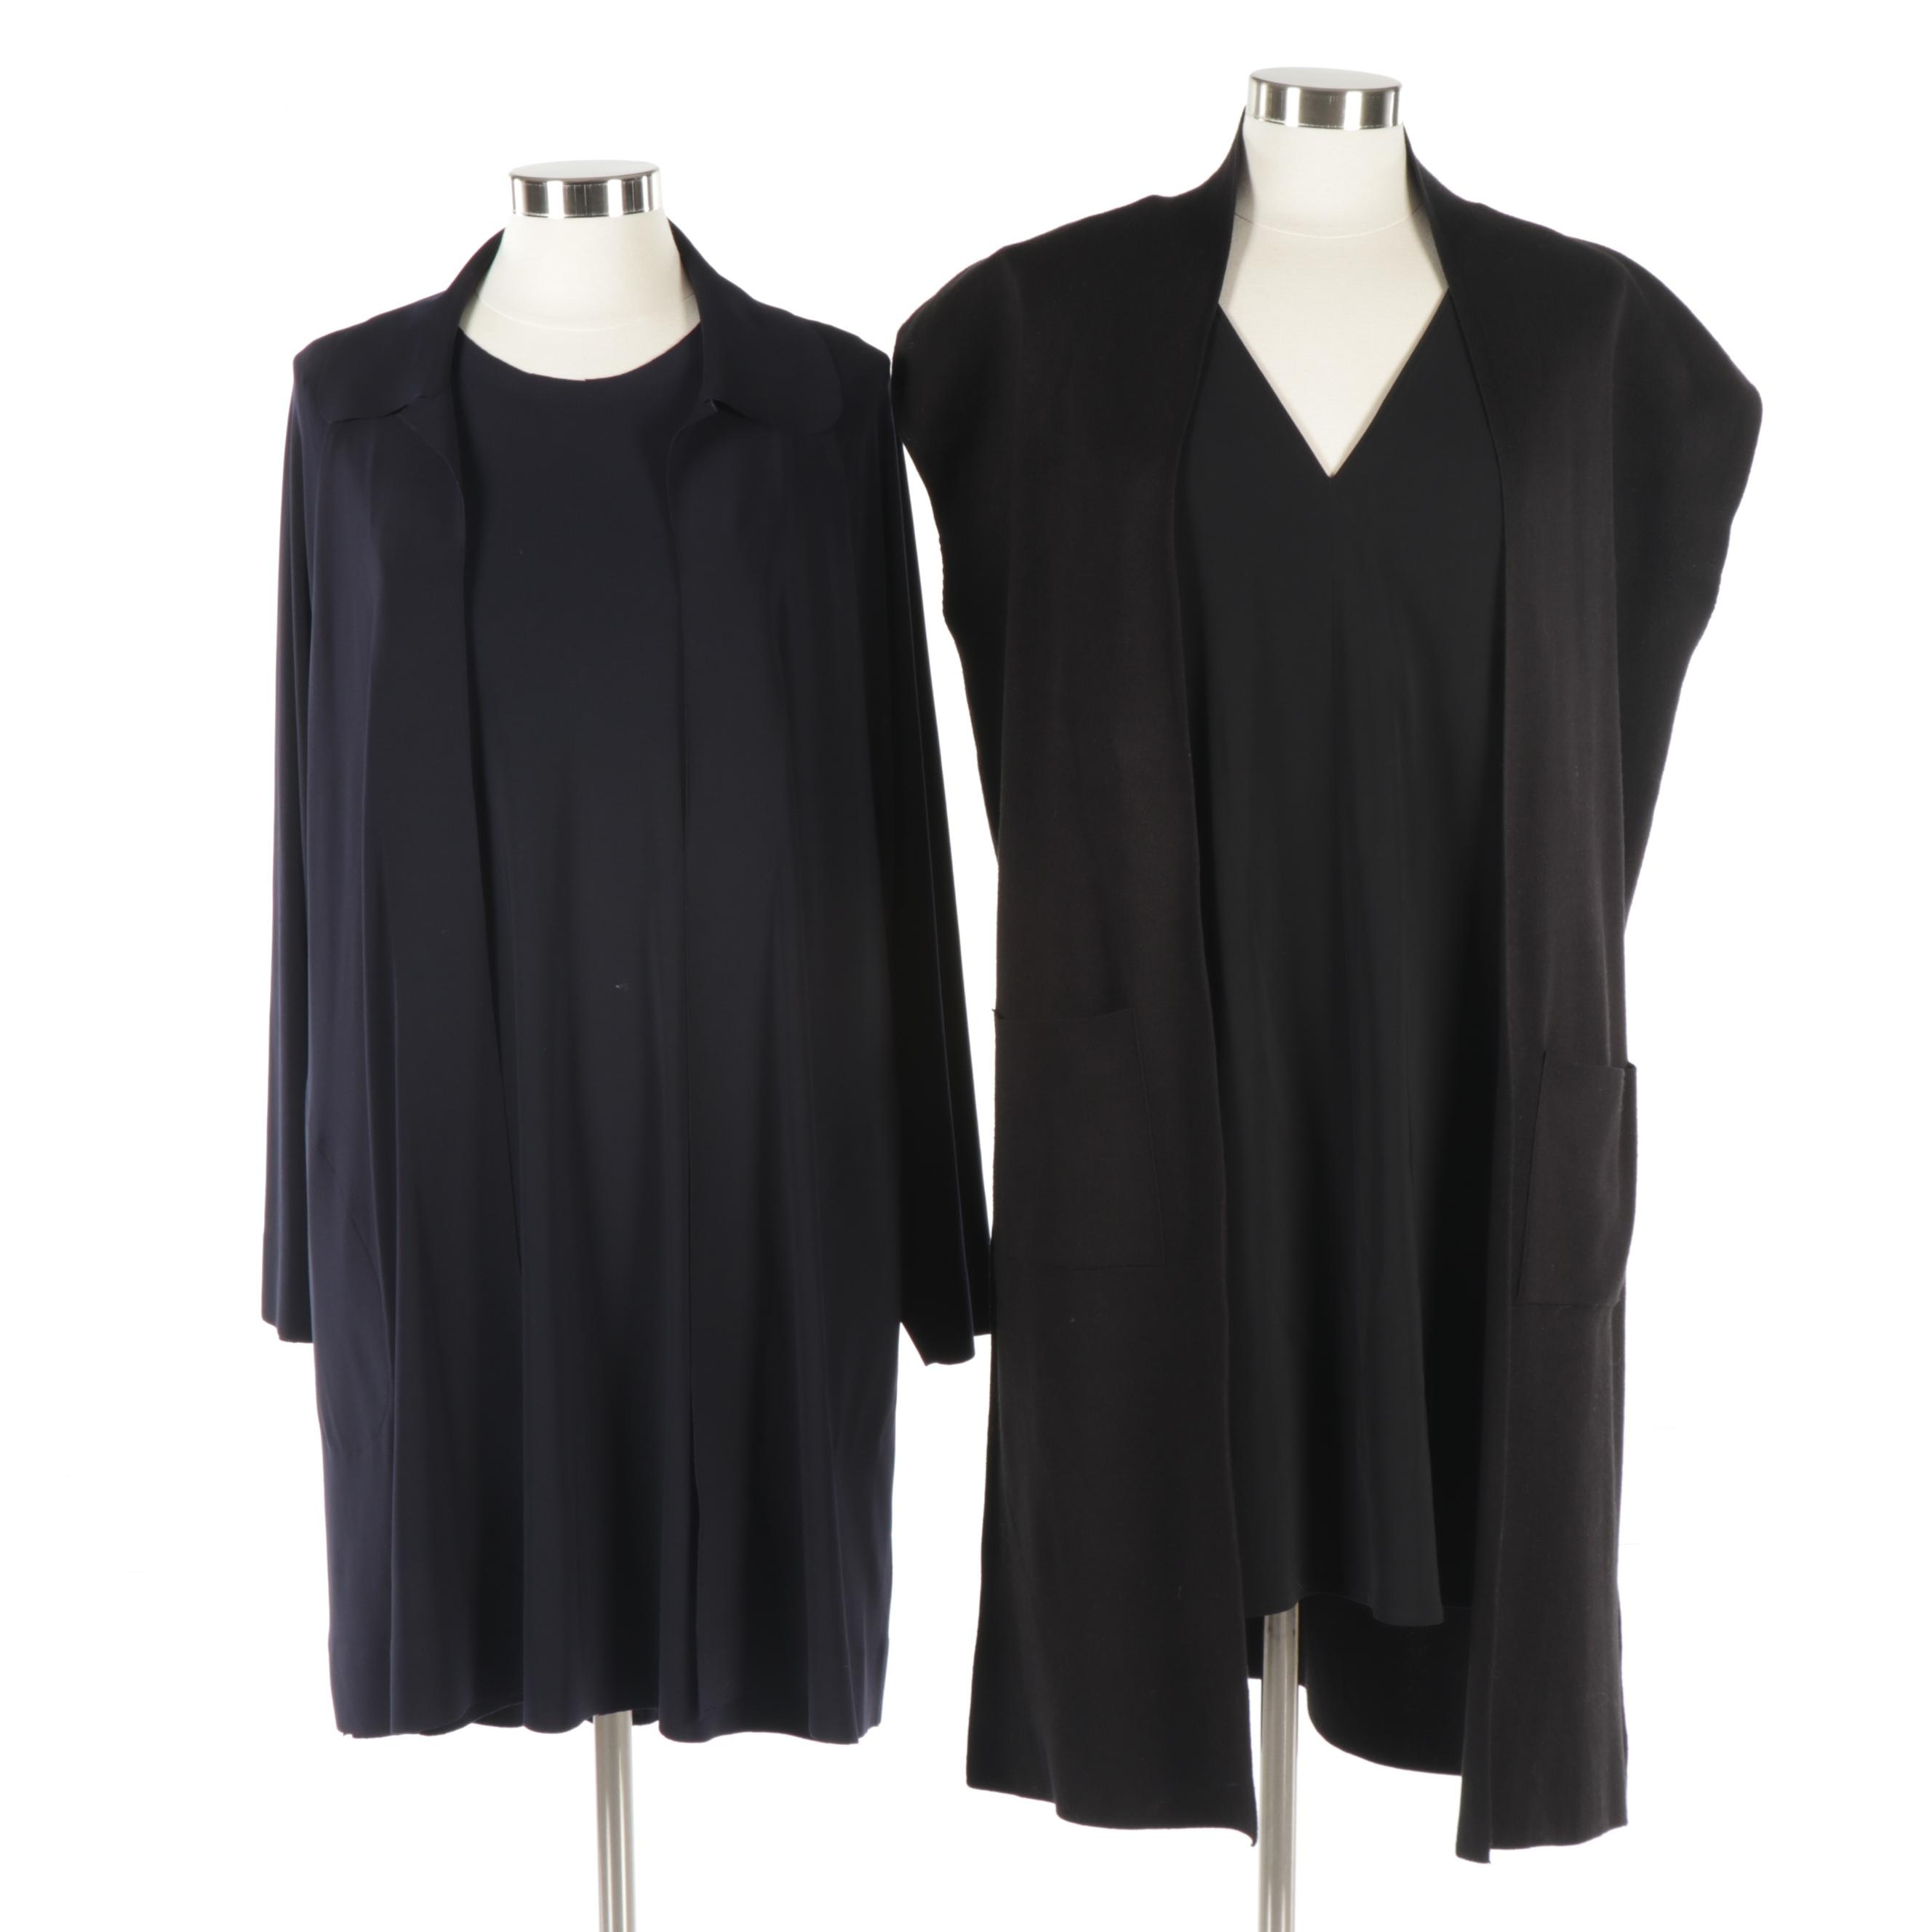 Women's Sleeveless Shift and Sheath Dresses with Jackets Including Rag & Bone